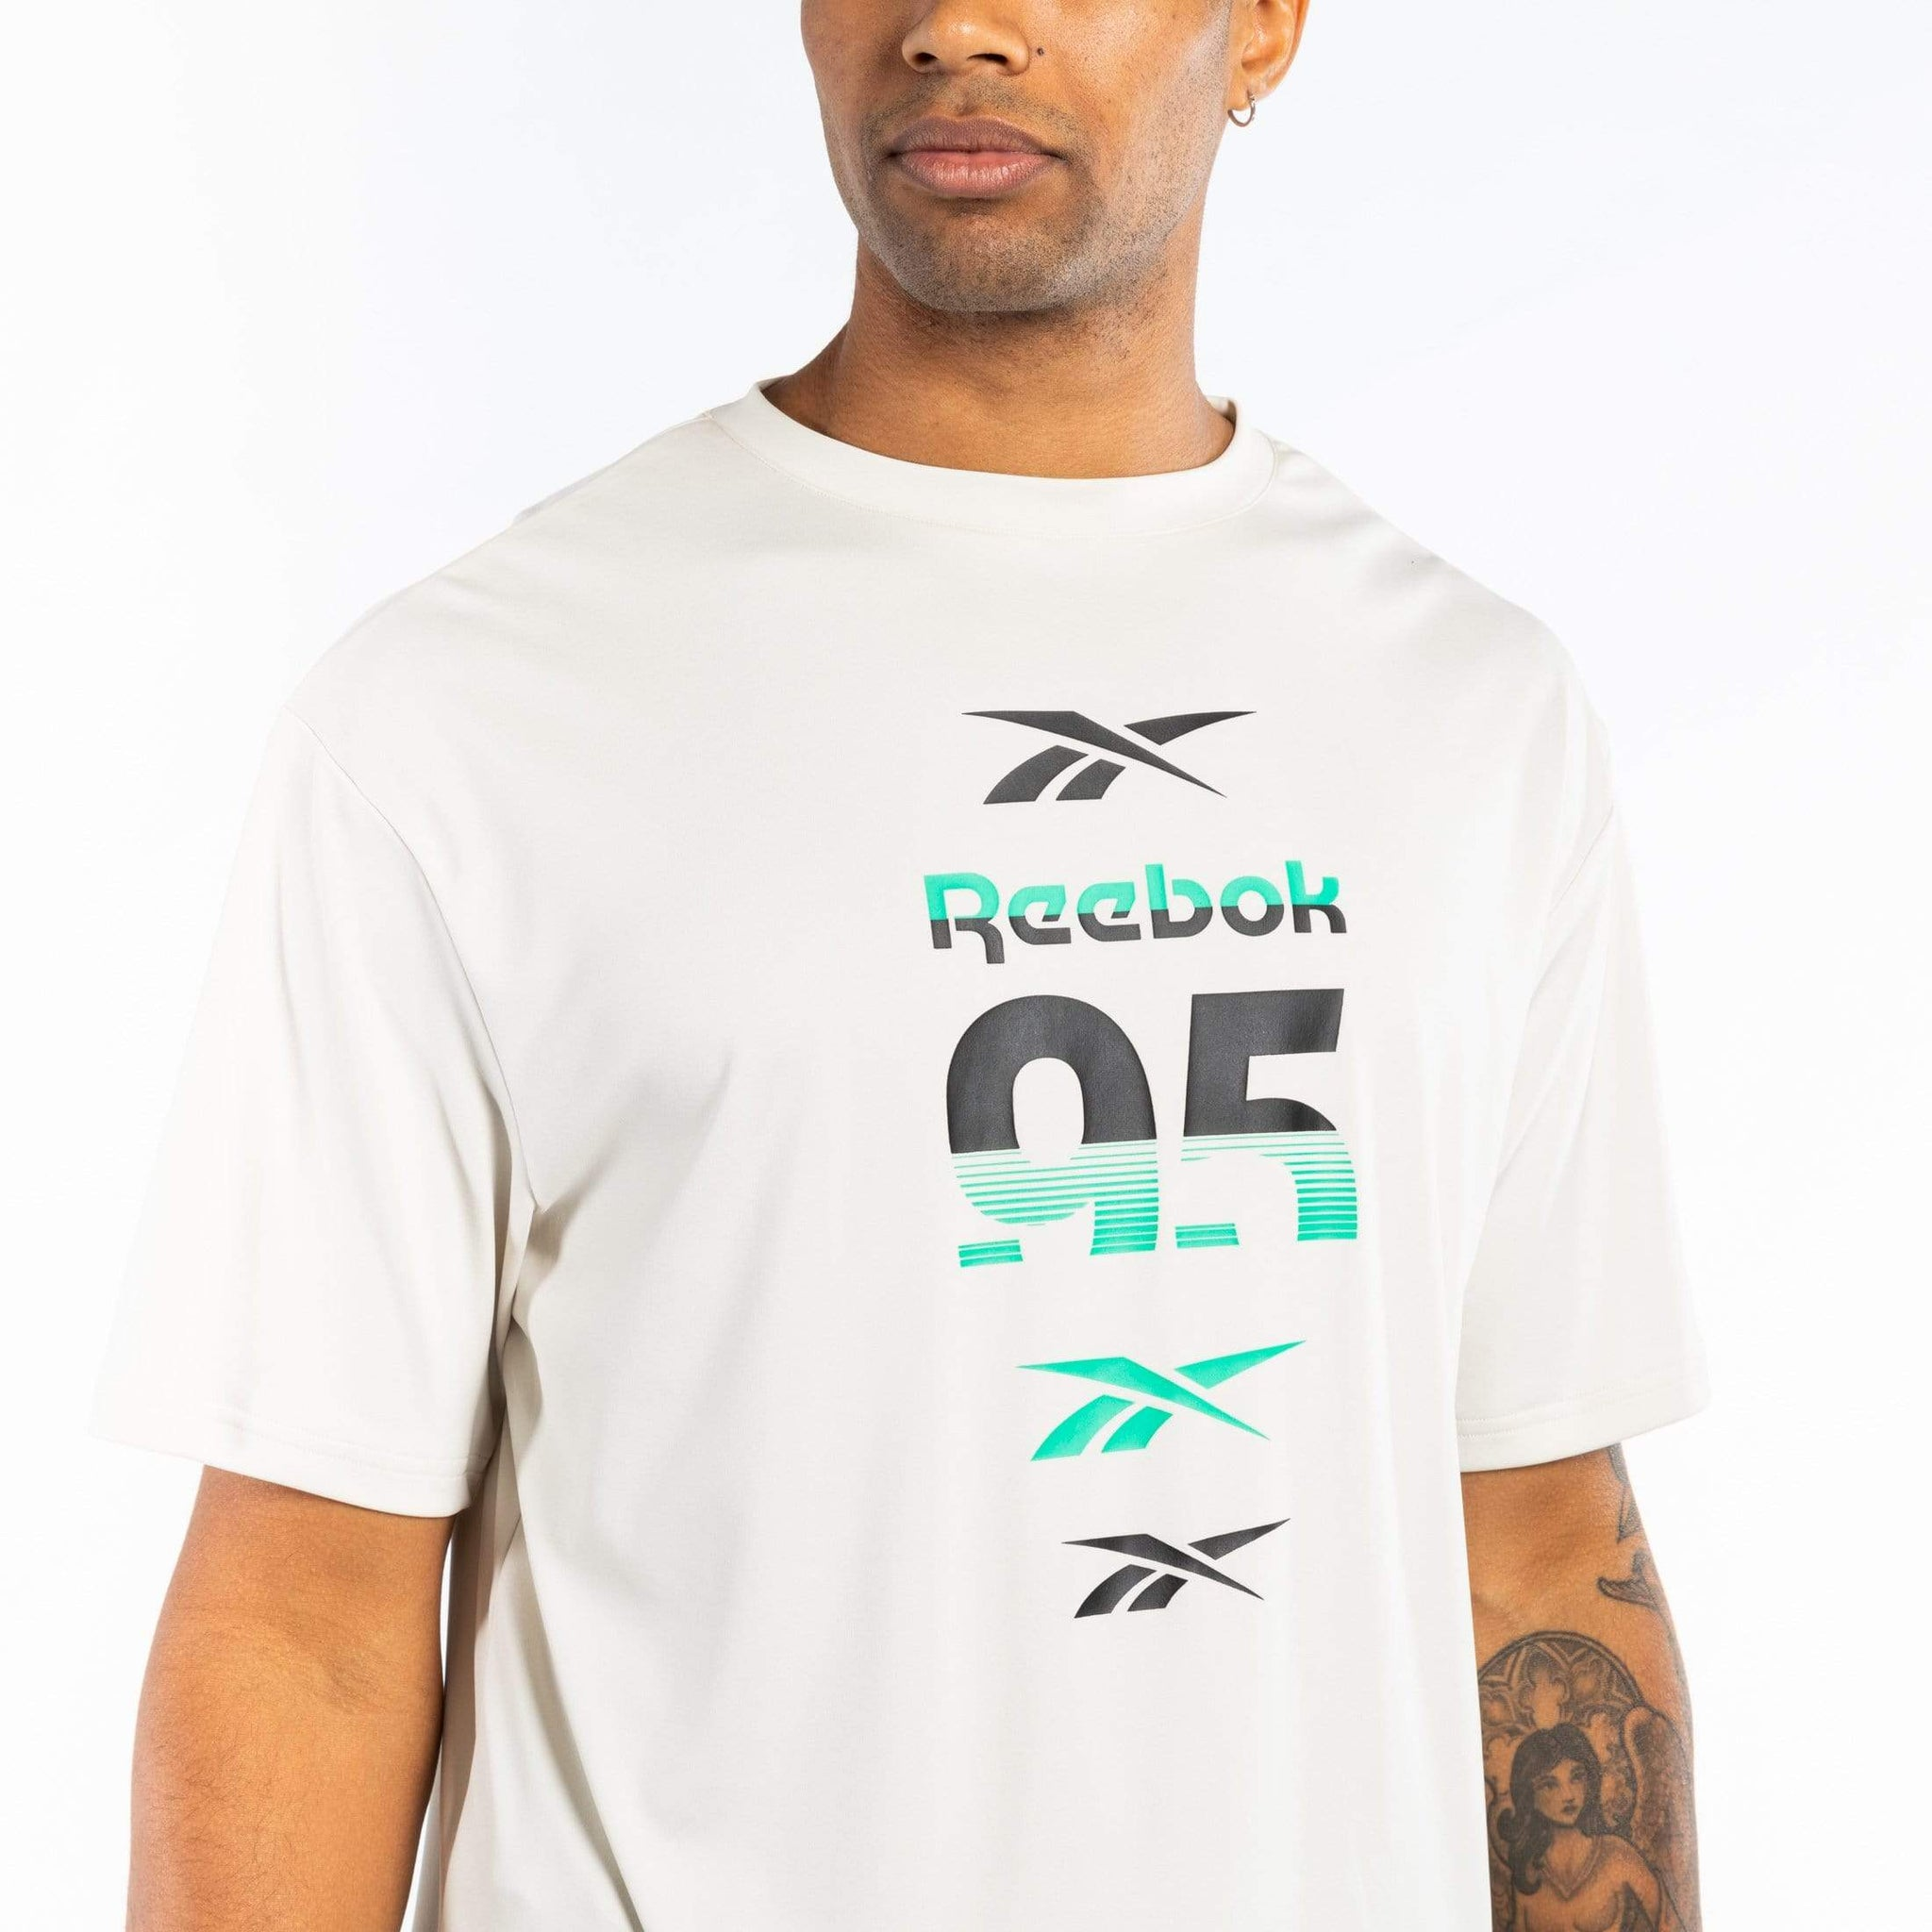 Reebok T-shirts Reebok Meet You There Tee